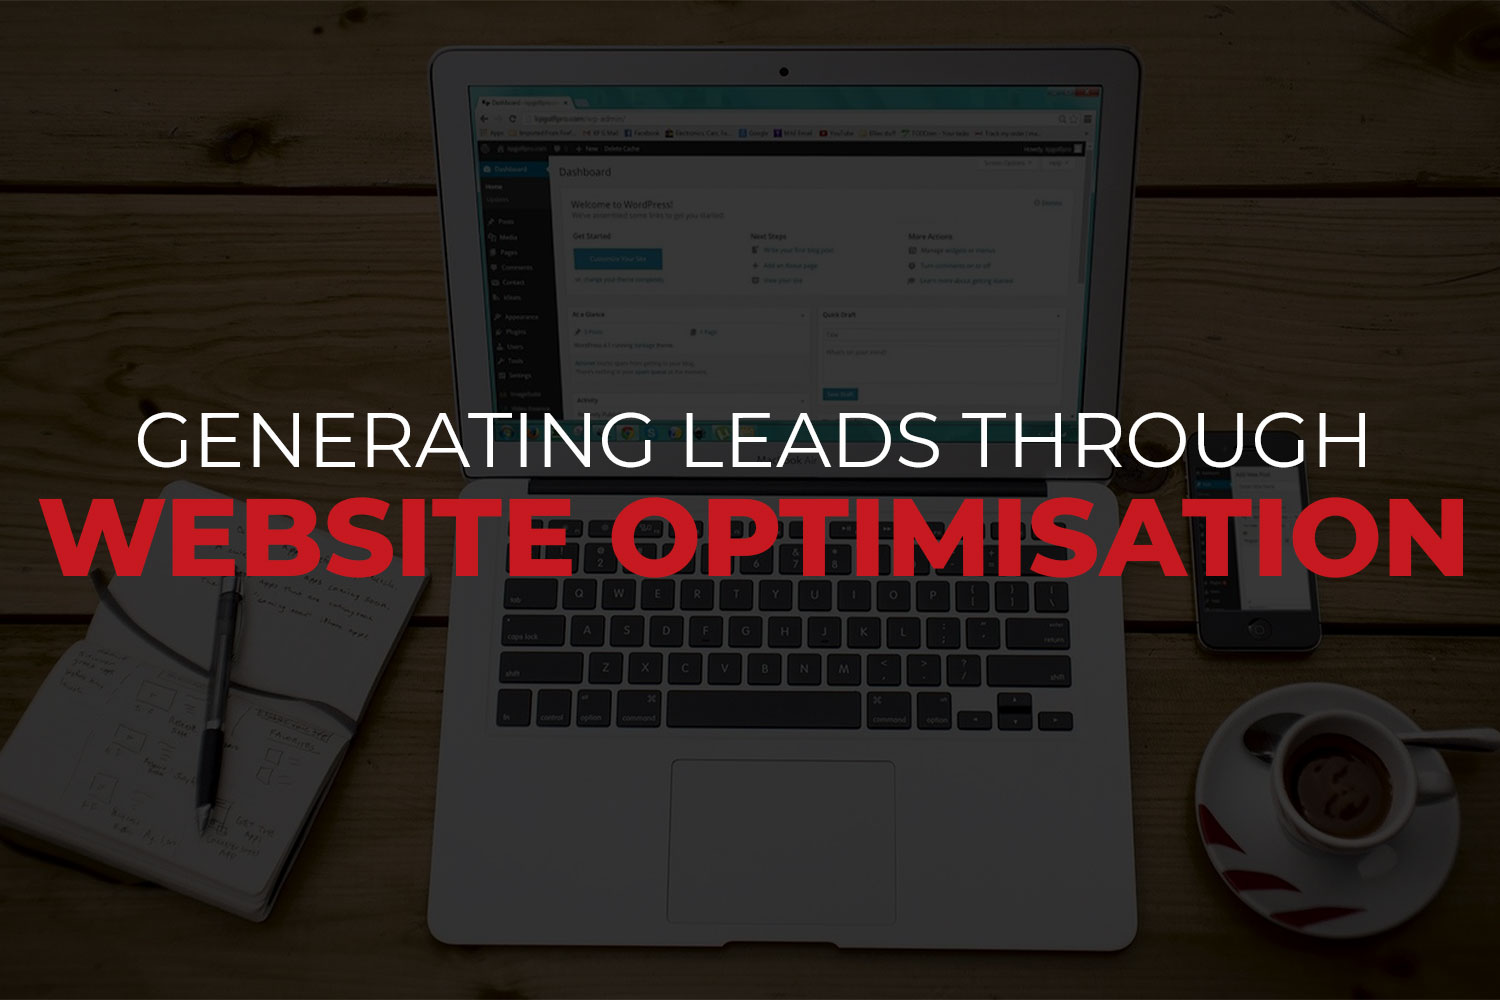 Best Ways to Optimise Your Website to Generate Leads